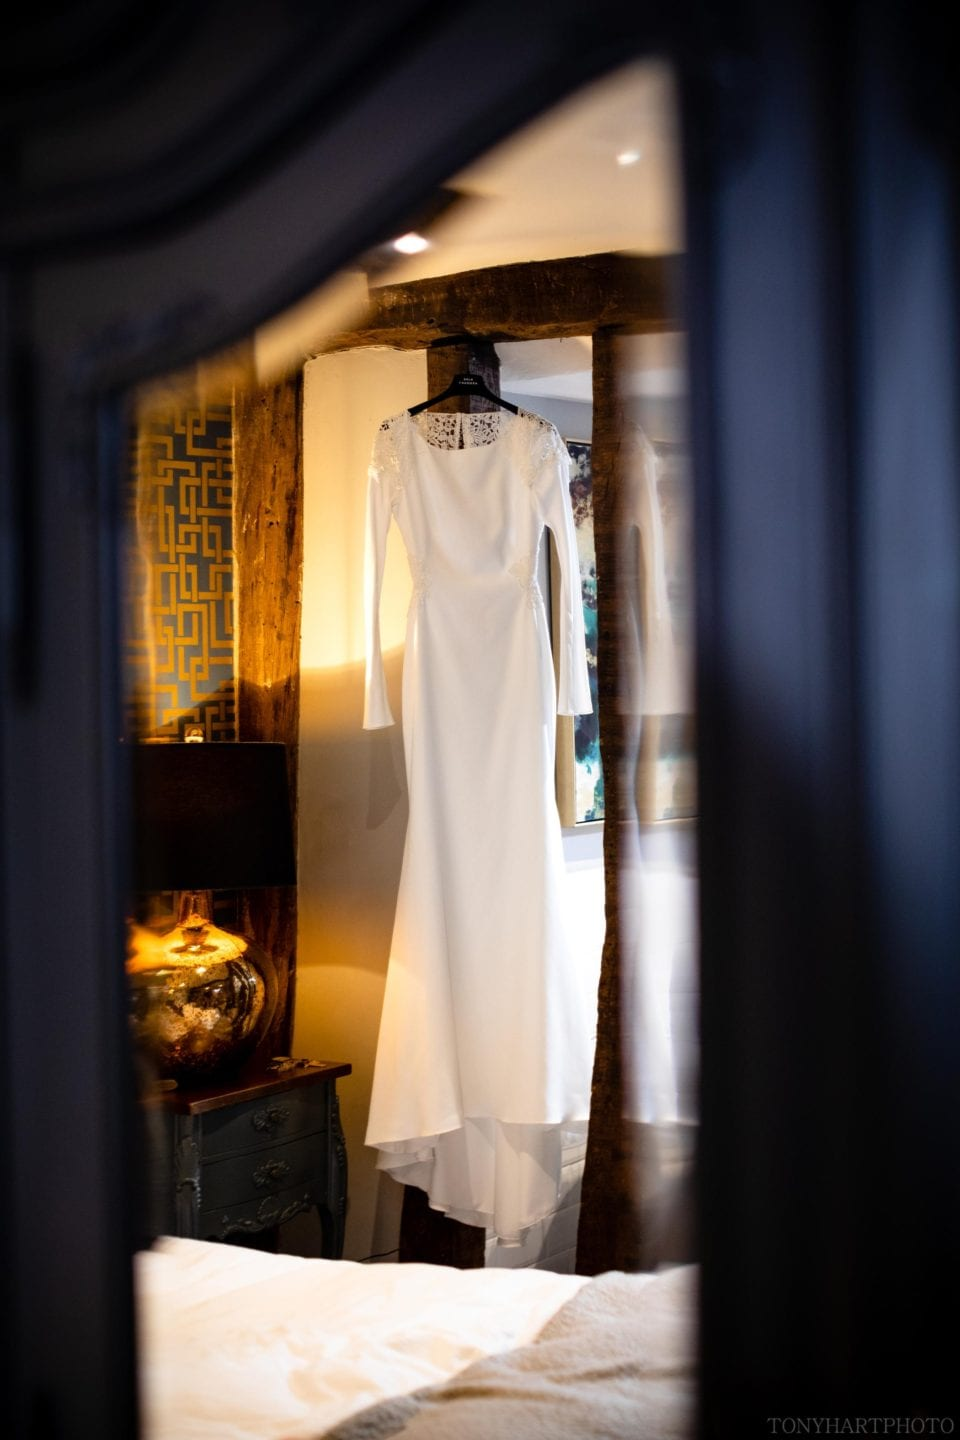 Anna's beautiful Rime Arodaky gown hanging in the Stratford Townhouse